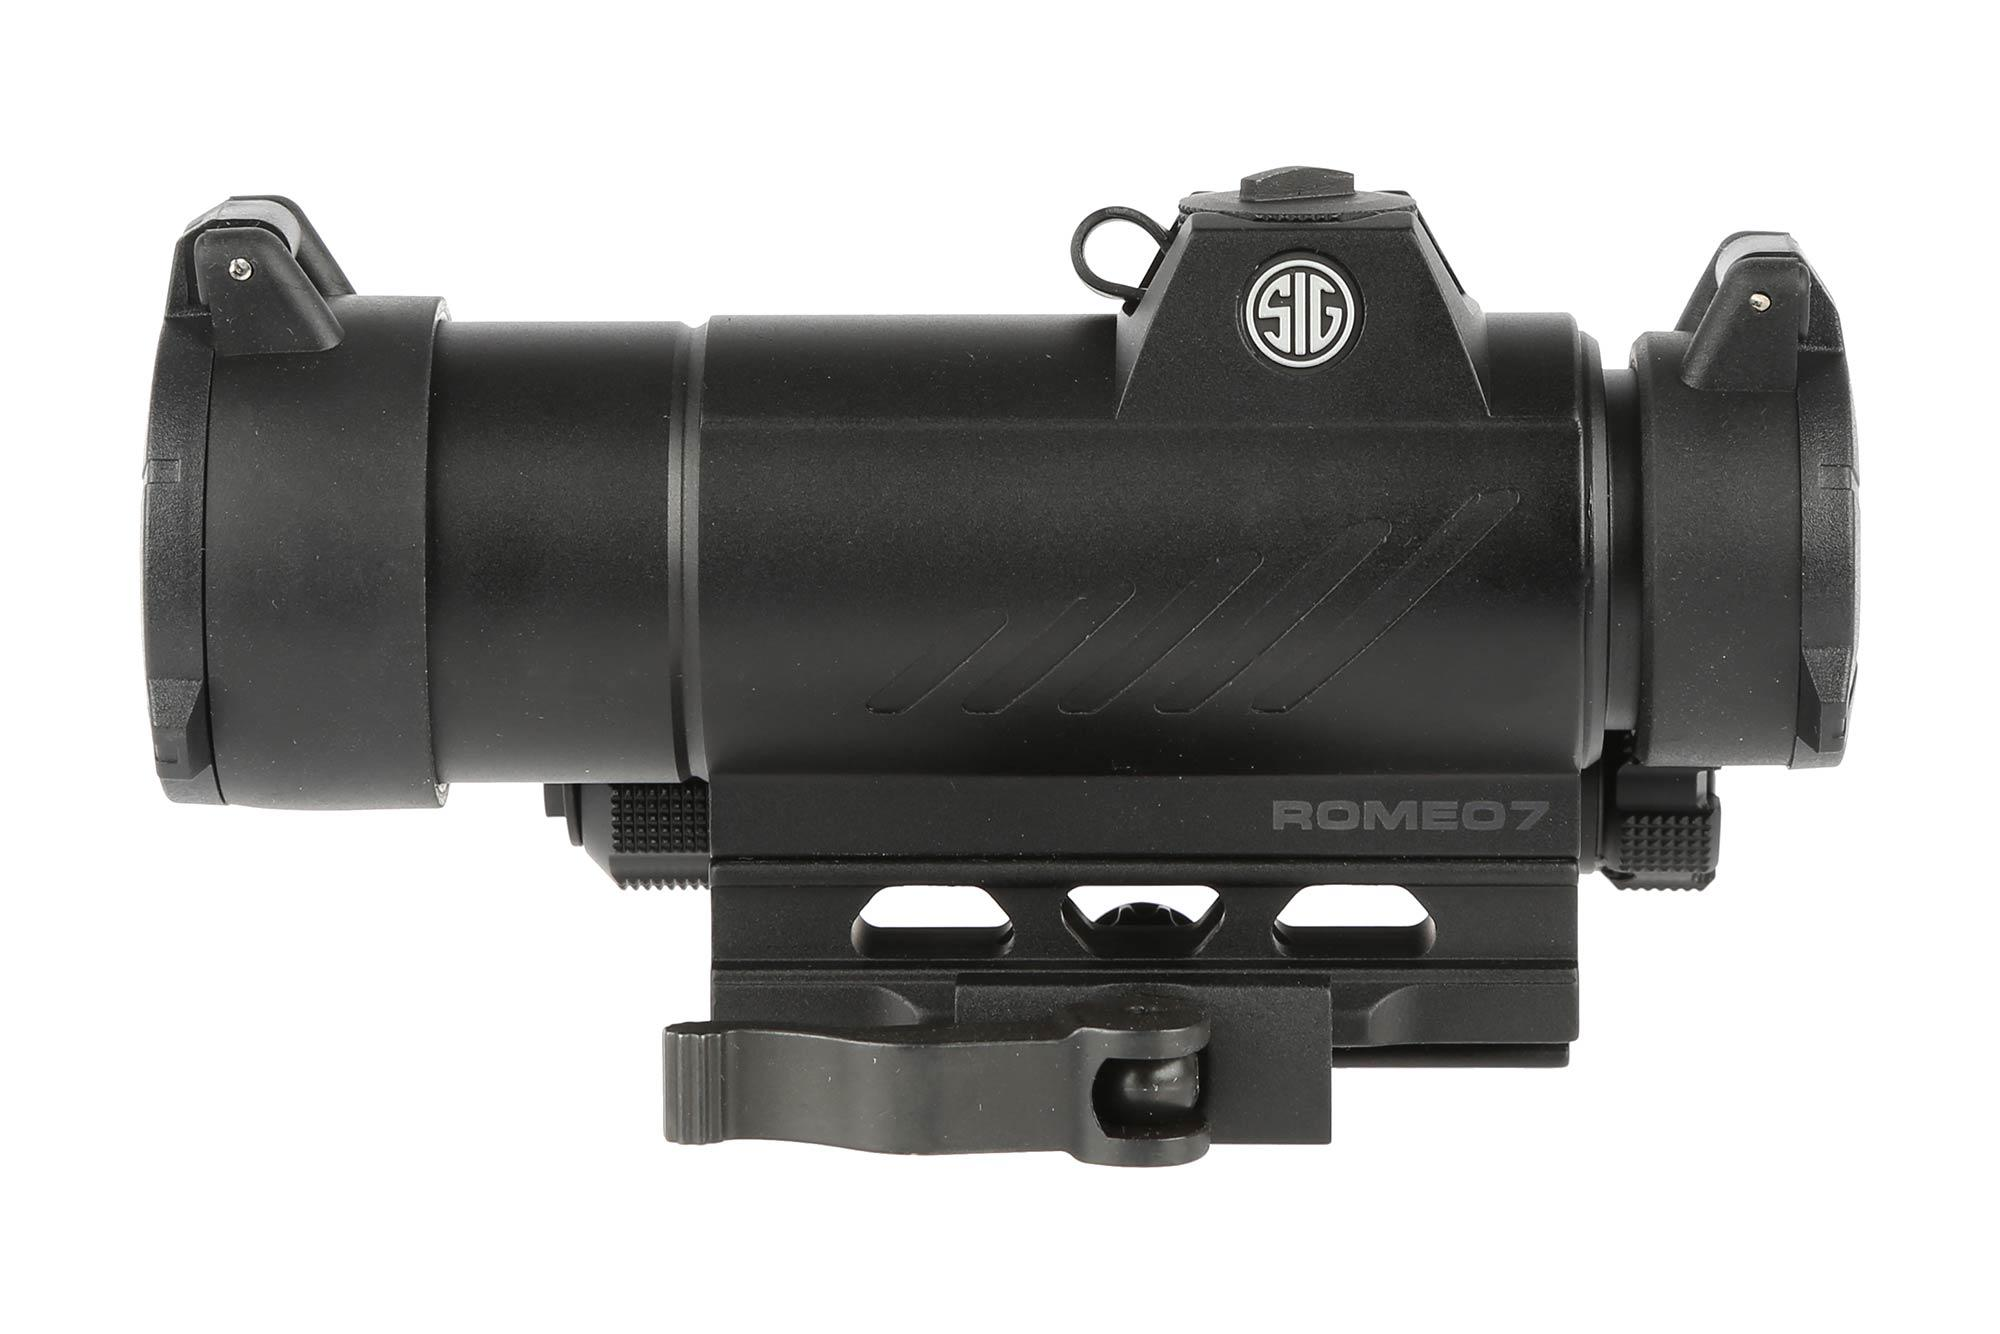 The Sig Romeo 7 red dot sight is constructed from 6061 aluminum